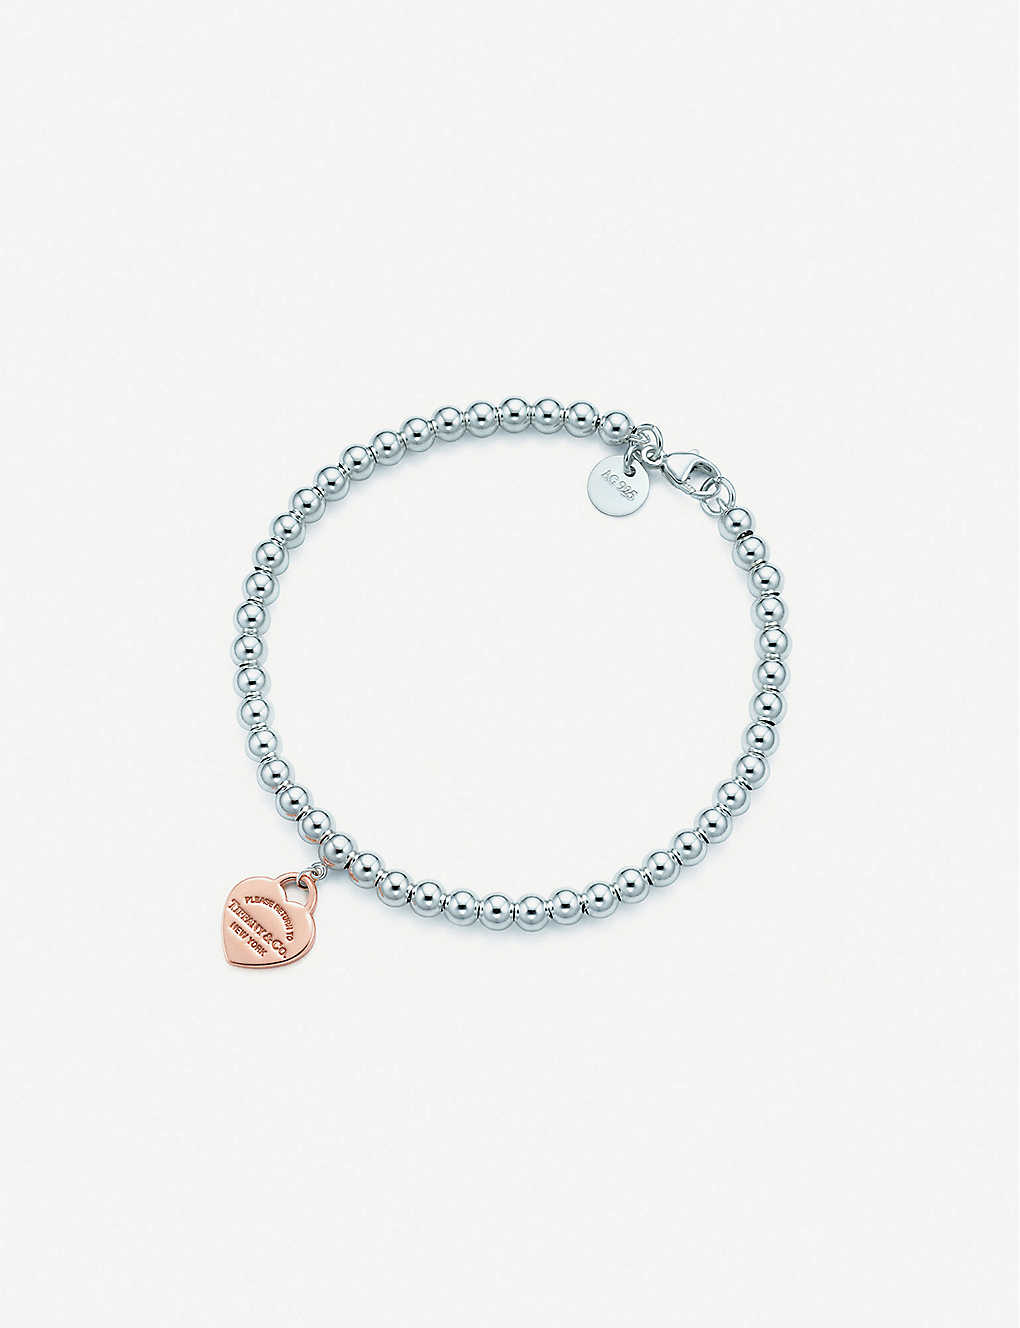 725fde132 TIFFANY & CO - Return to Tiffany sterling-silver and rubedo bracelet ...